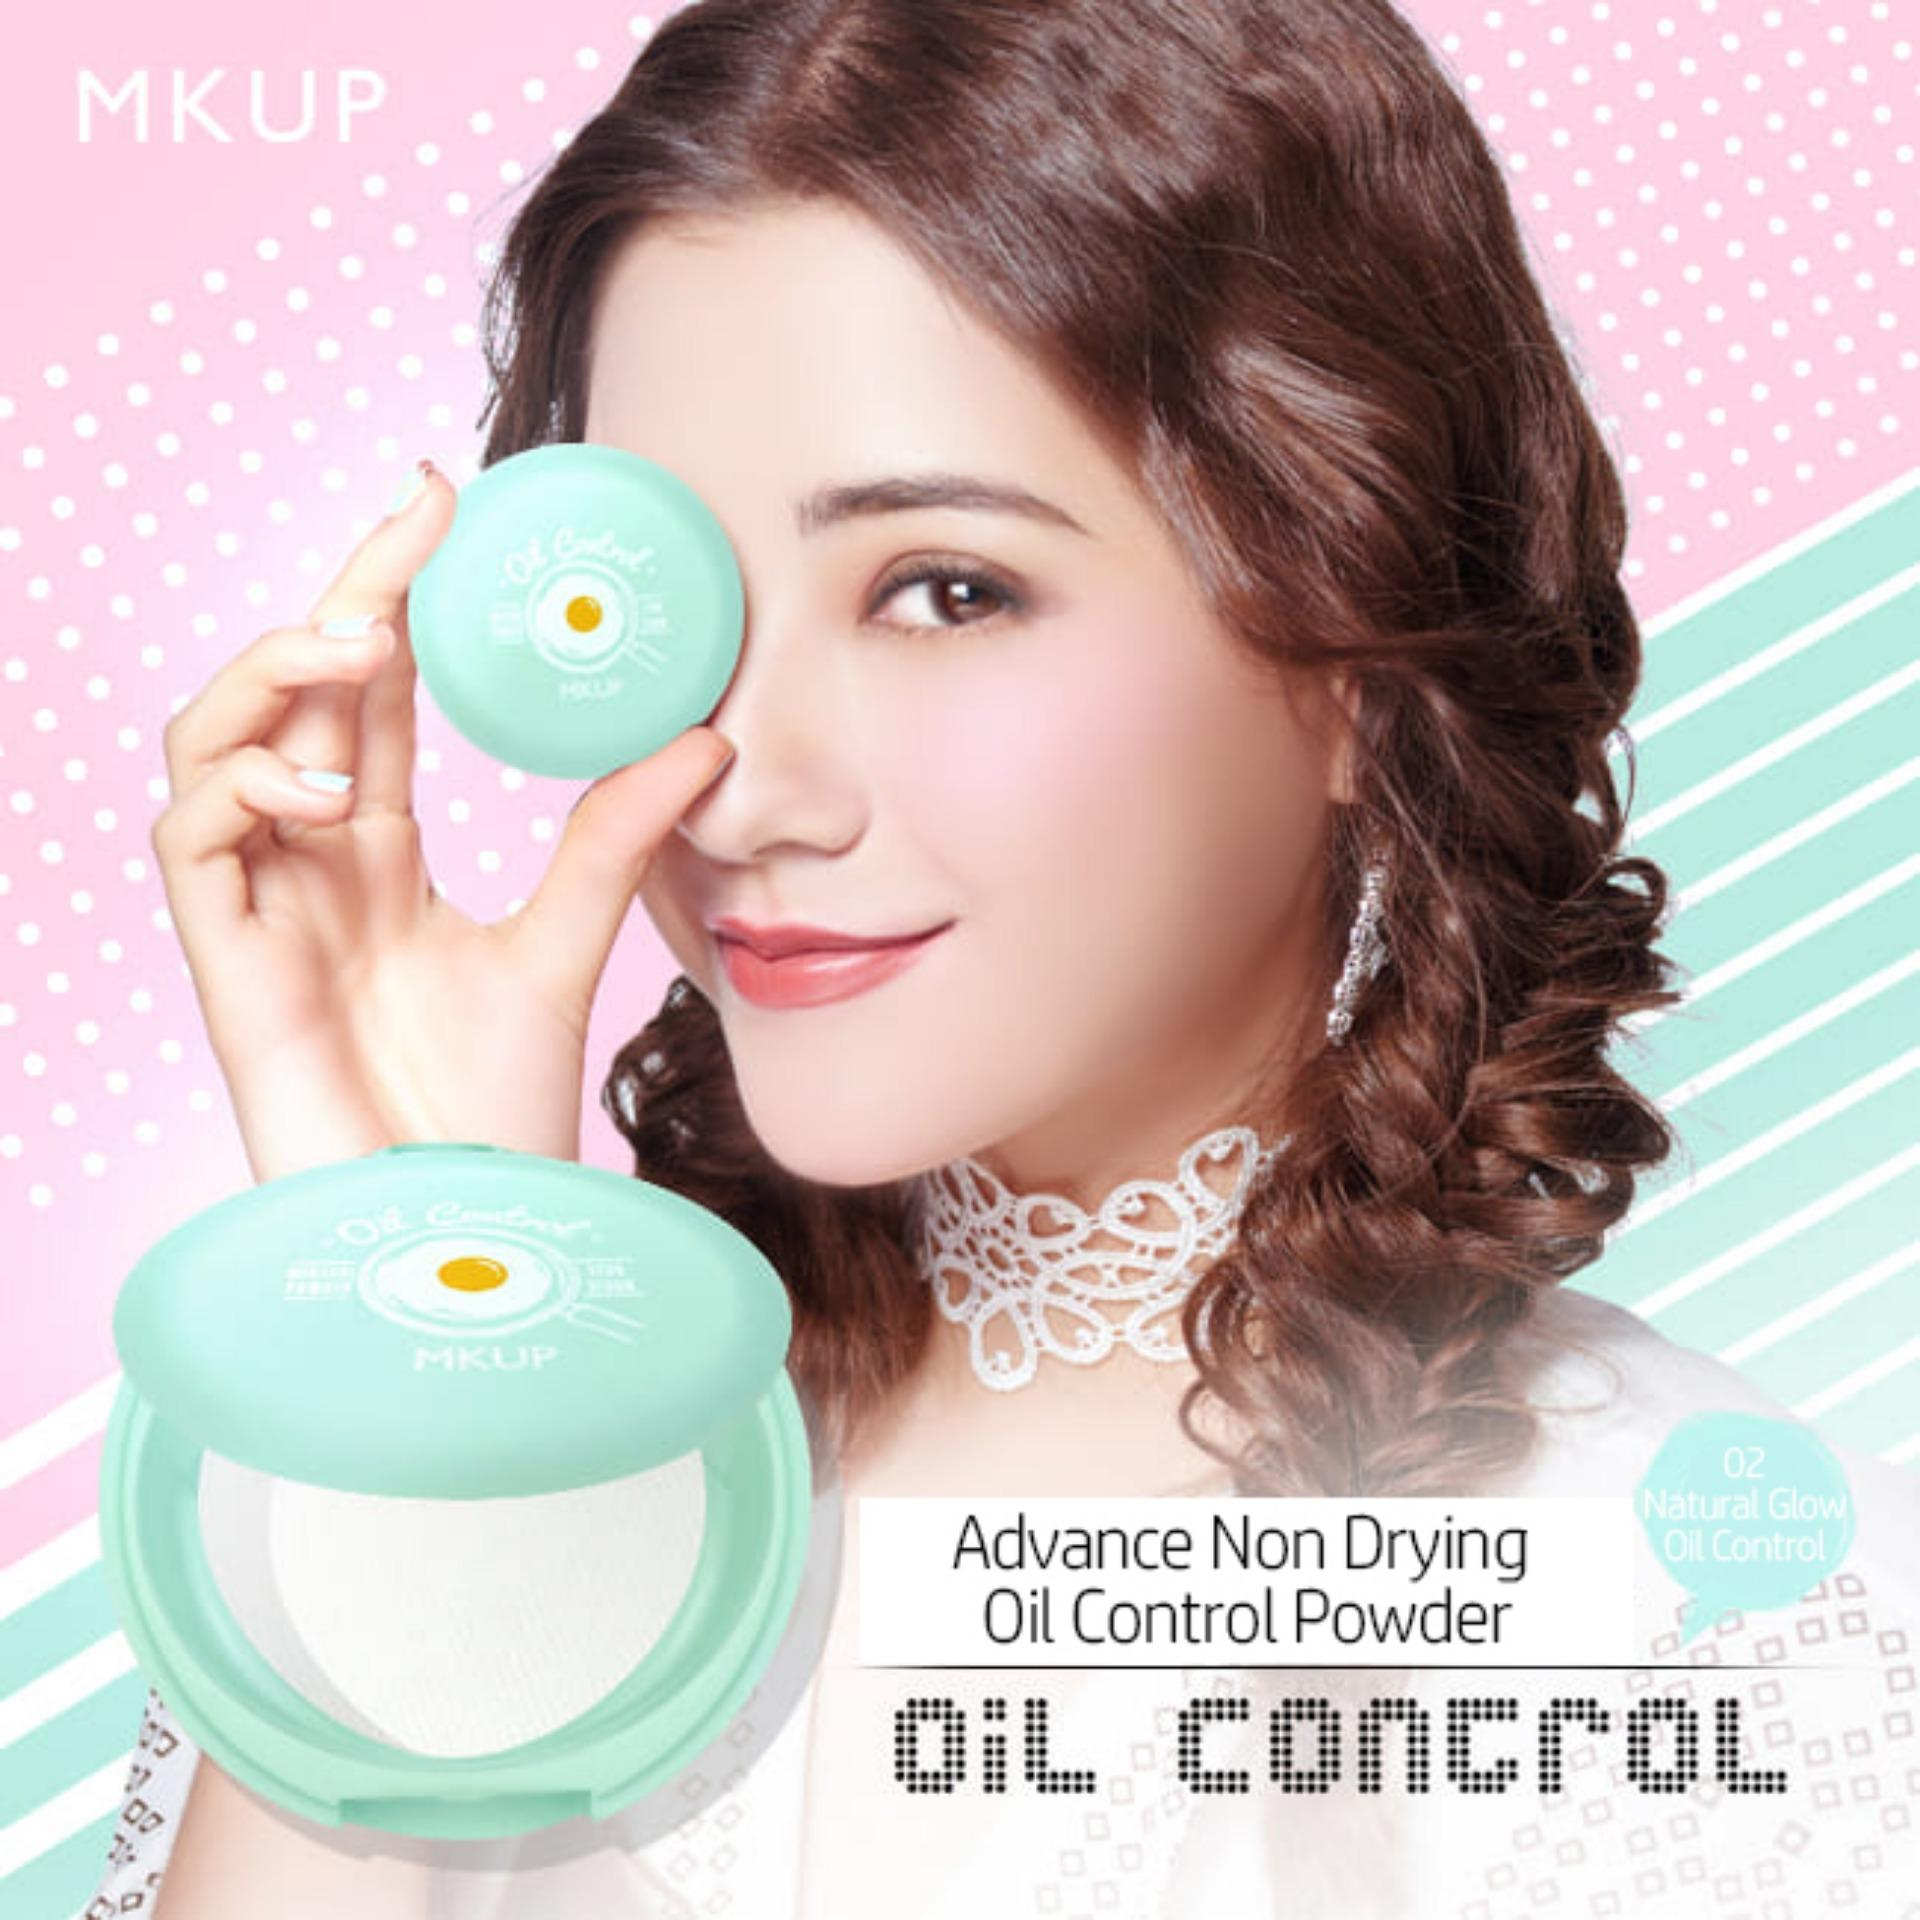 Coupon Mkup® Advance Non Drying Oil Control Powder 02 Light Reflecting